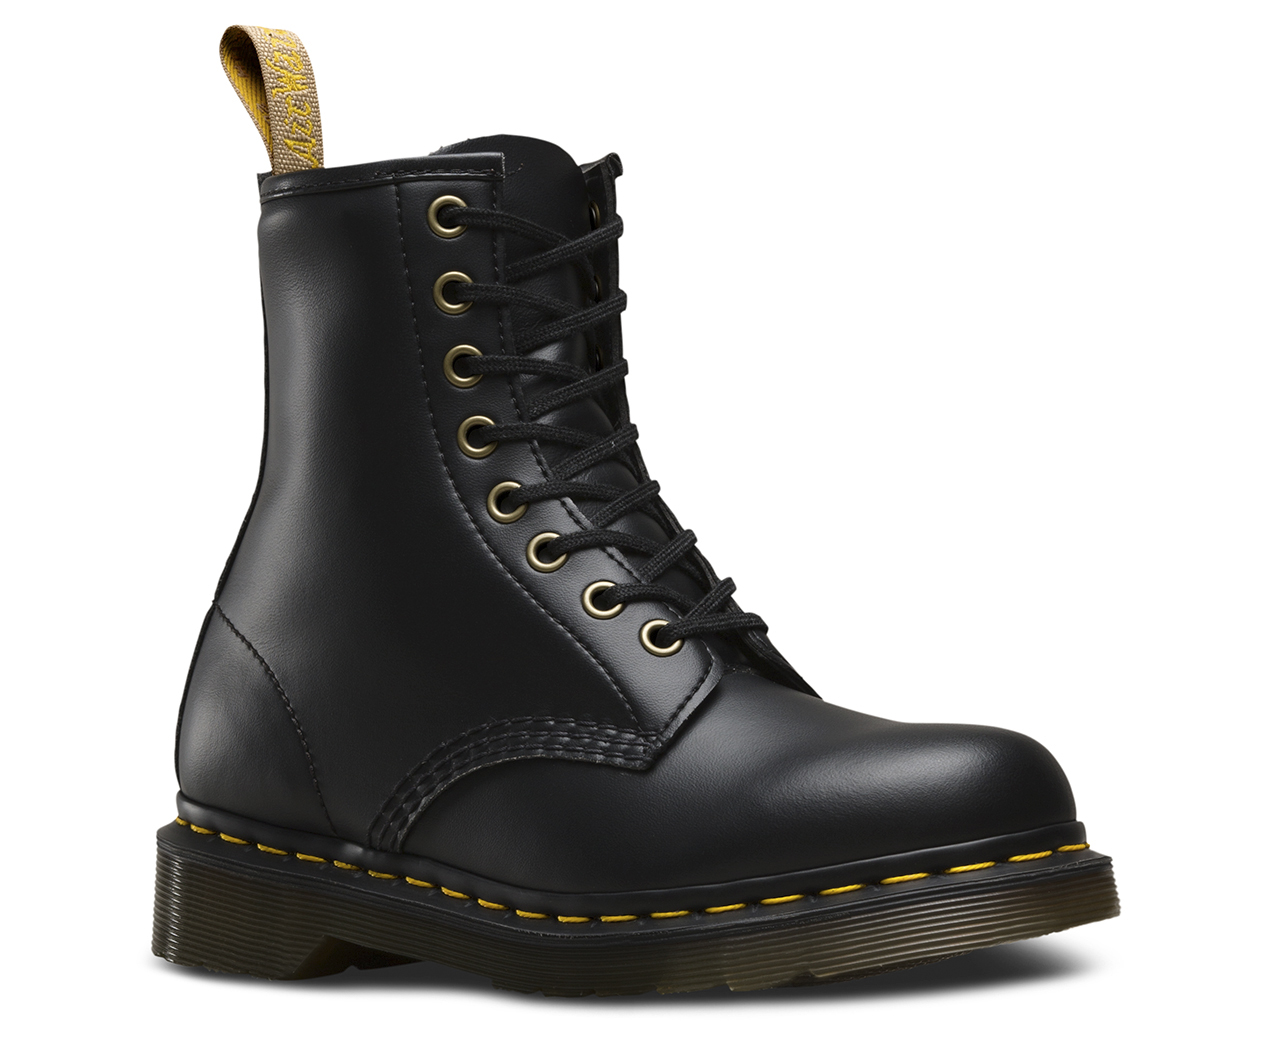 Sale - Originals 1460 boots - Dr Martens Dr. Martens Buy Cheap View Buy Cheap 2018 New Clearance Lowest Price Cheap Sale 100% Guaranteed Authentic For Sale VZC9s6